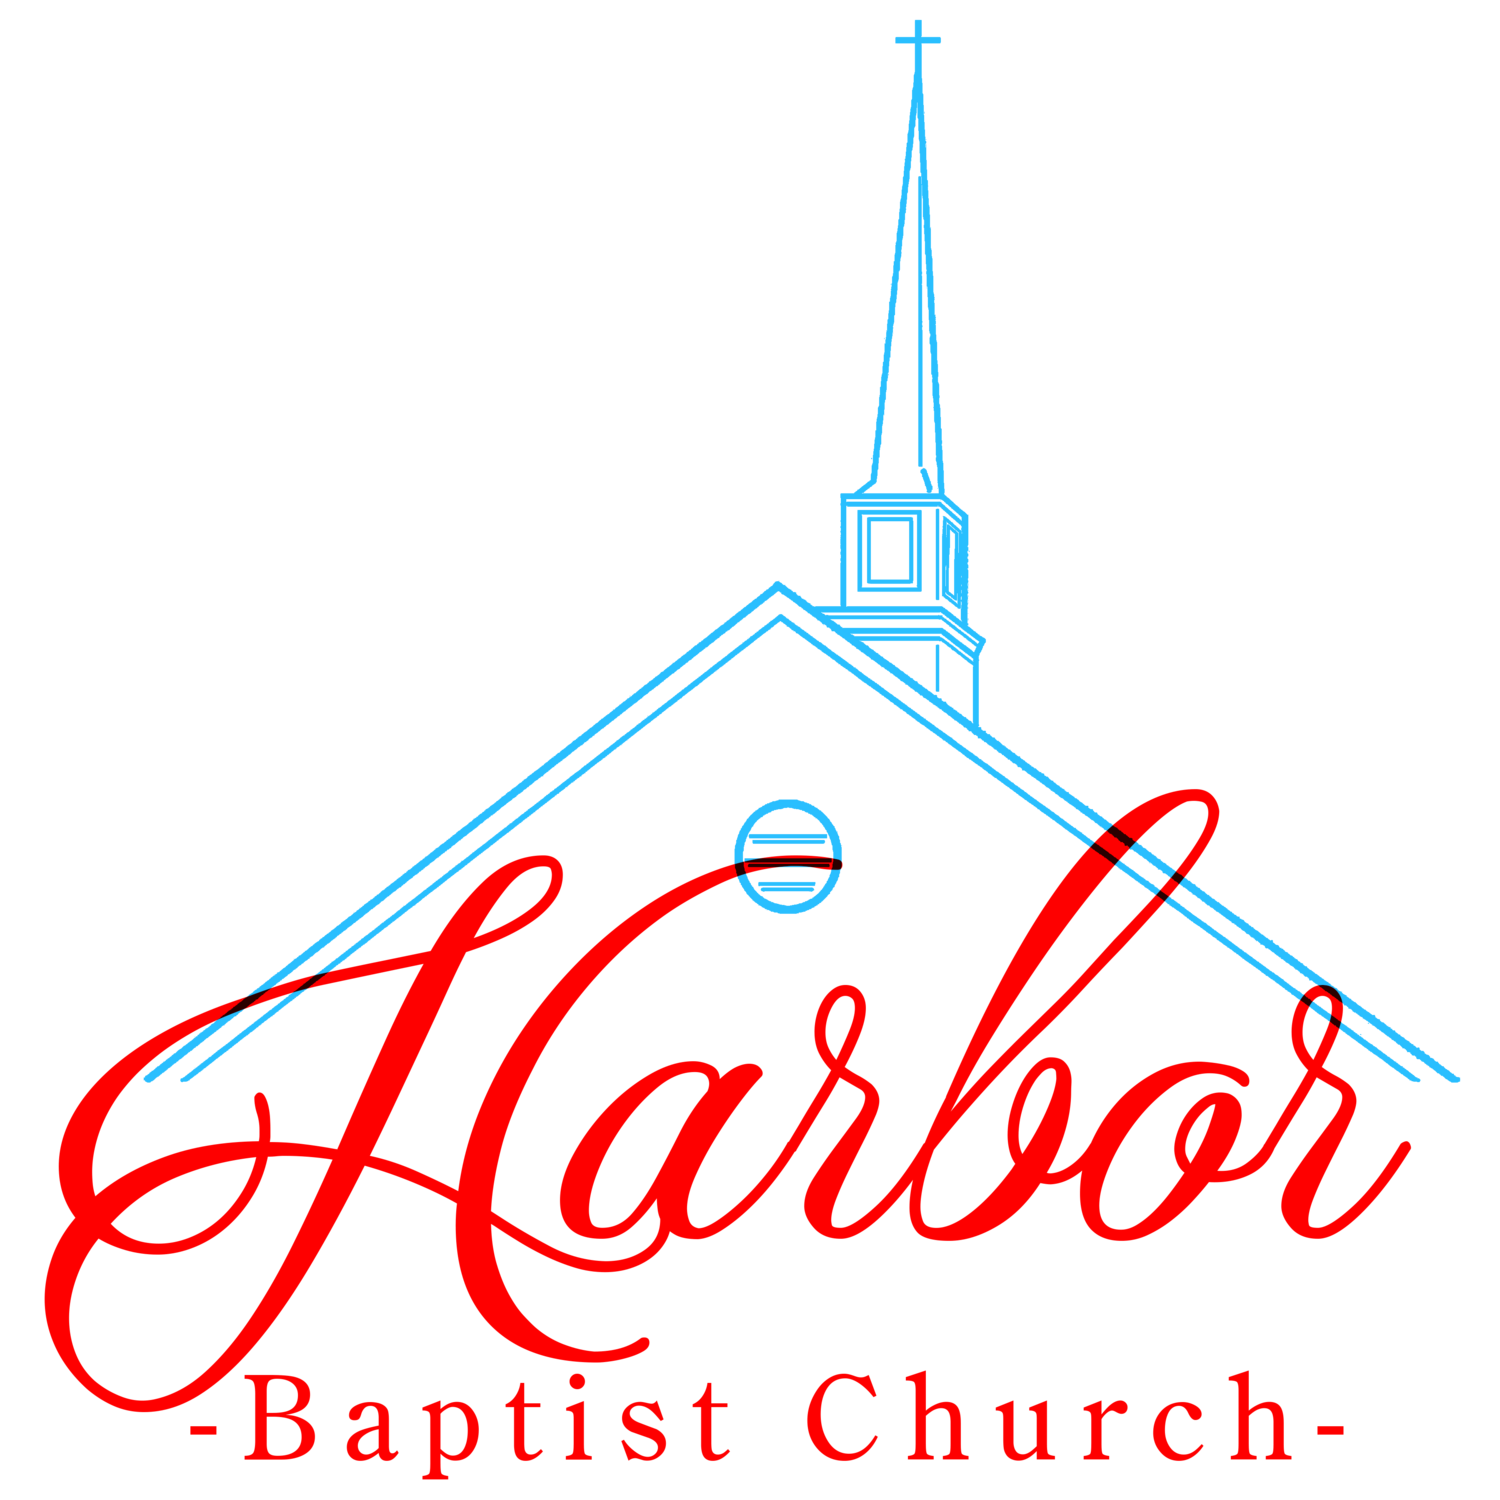 Harbor Baptist Church